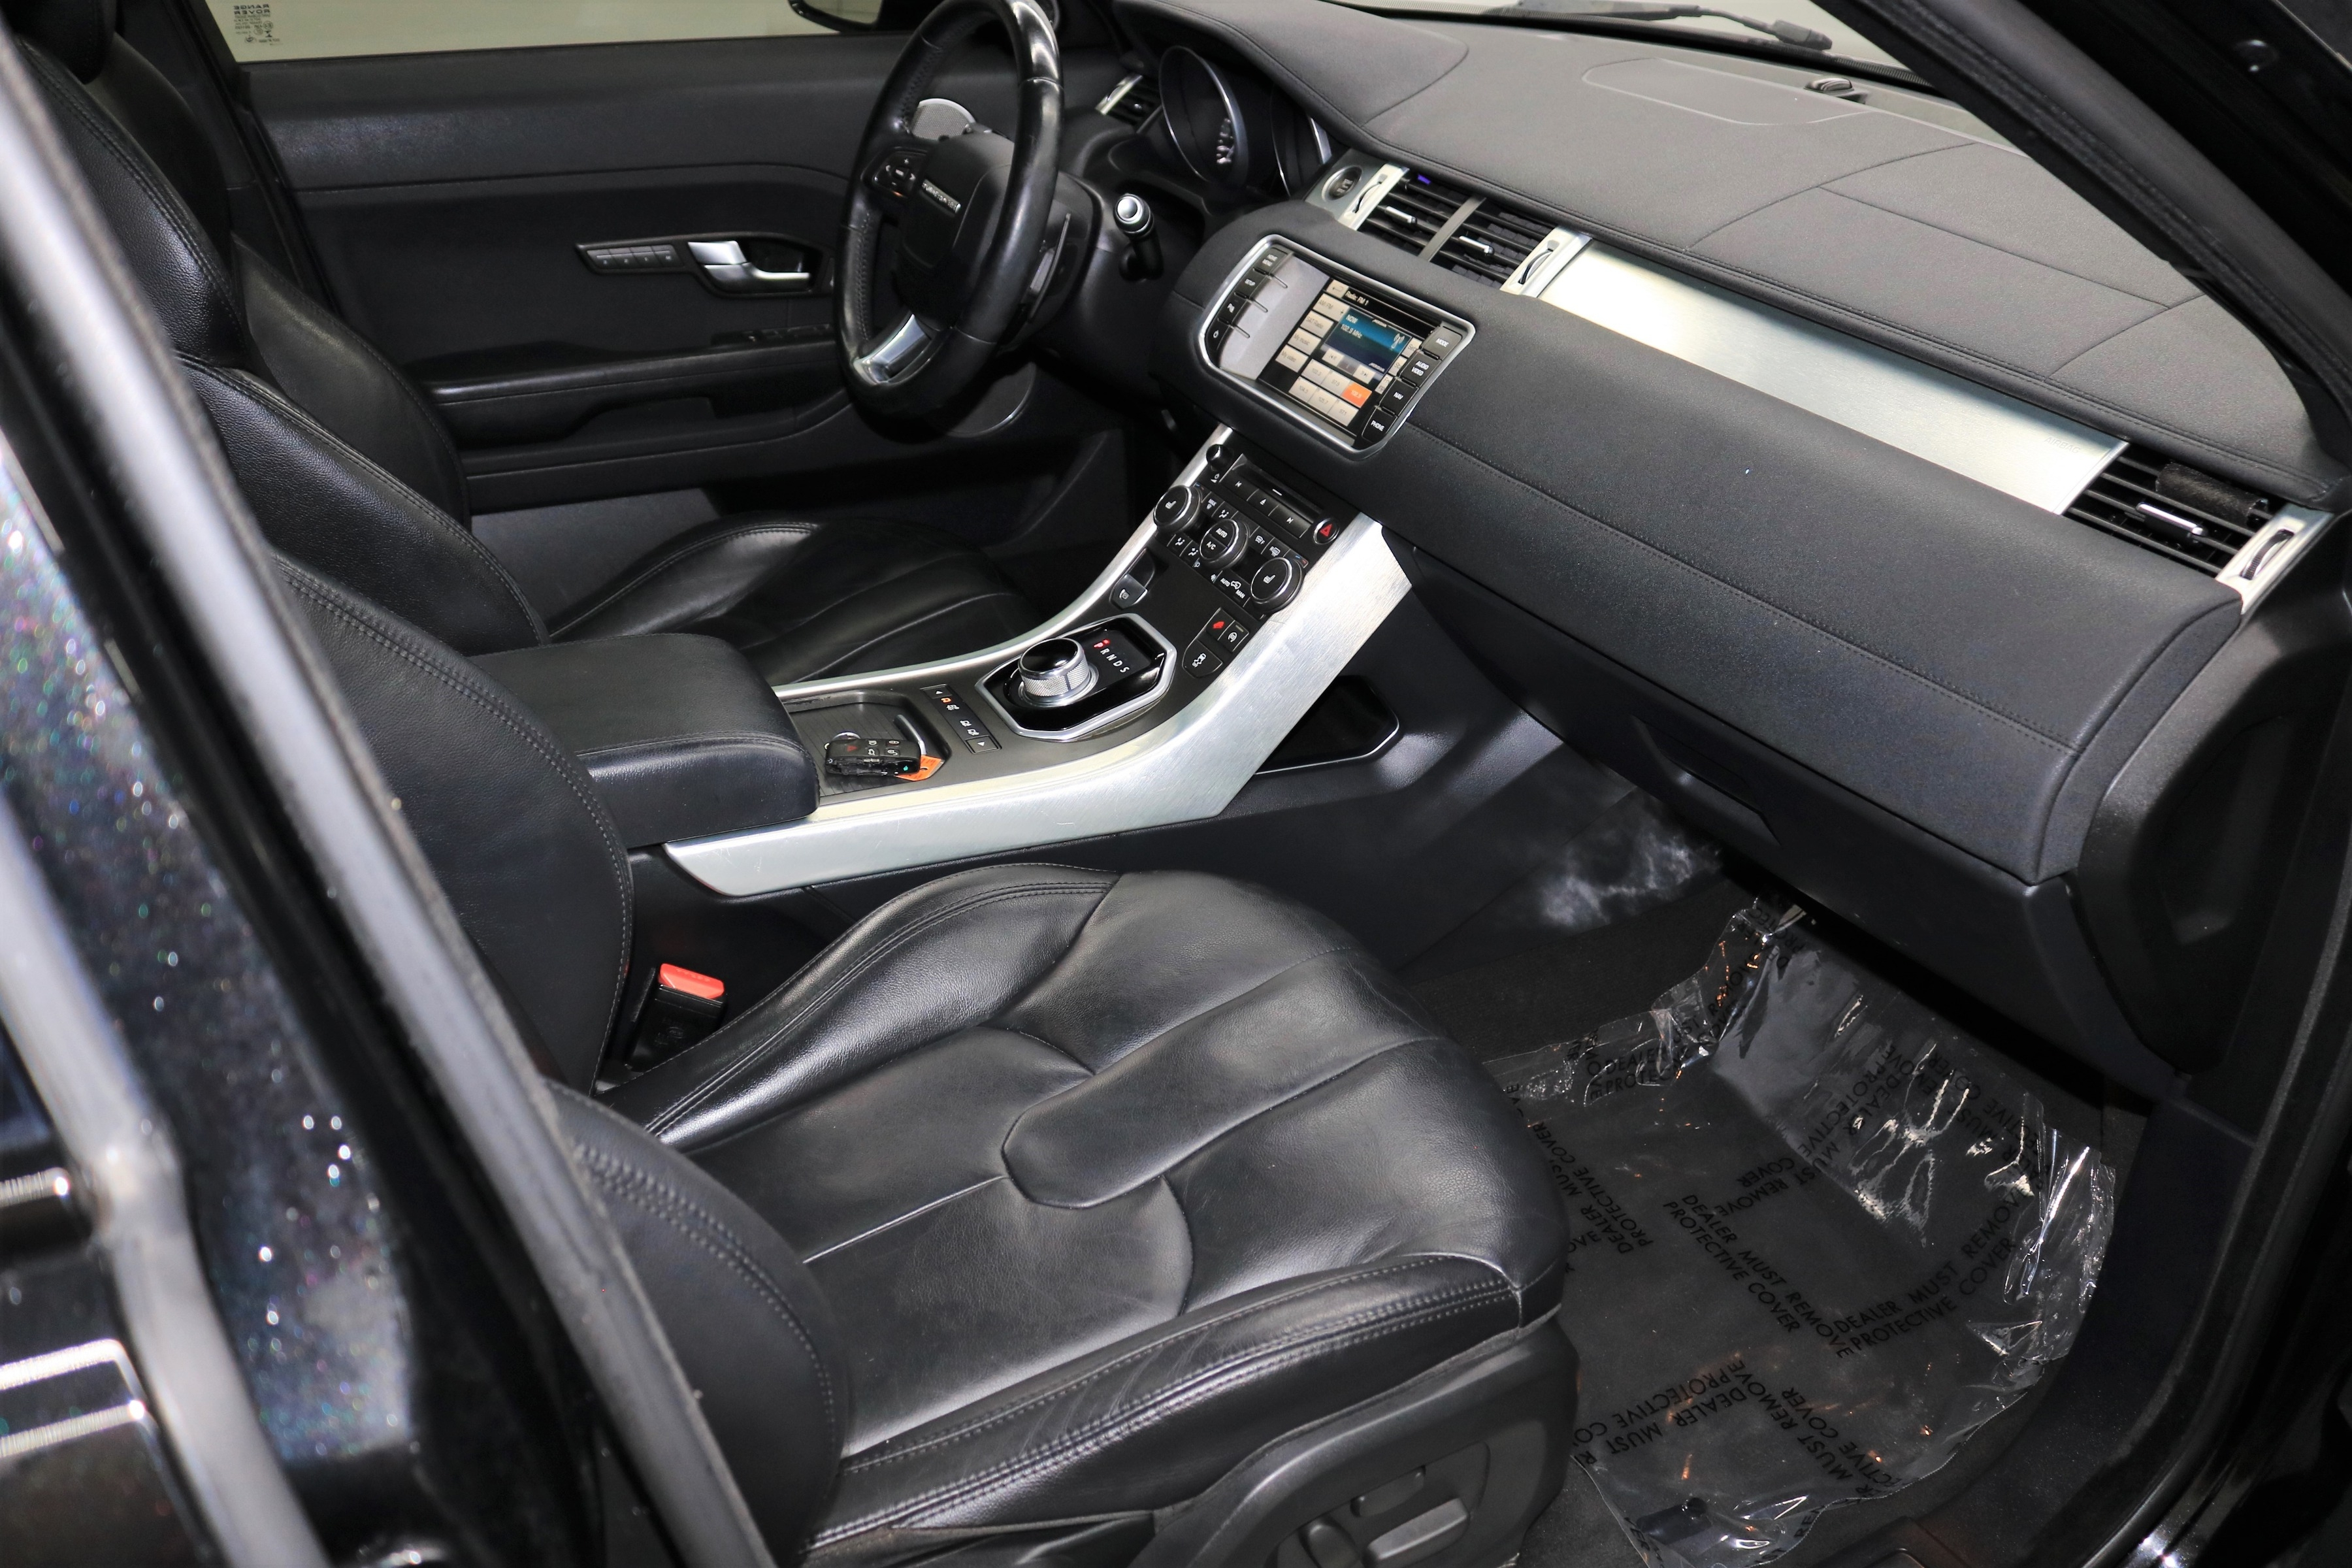 Black Leather Look Car Seat Covers Cover Set For Range Rover Evoque 5DR 2011 On